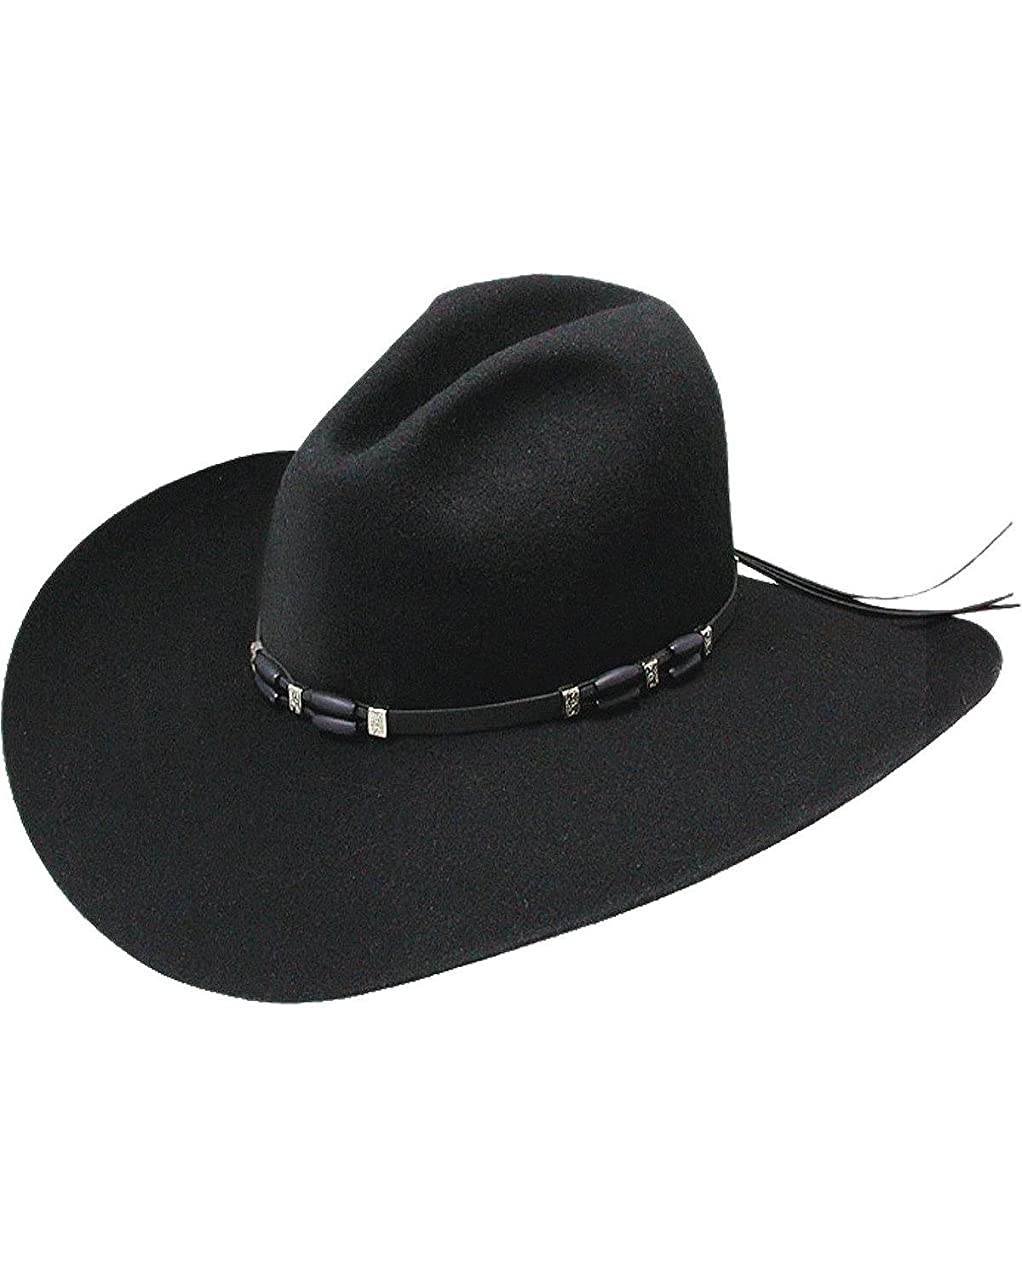 Resistol Men's 2X Cisco Felt Cowboy Hat